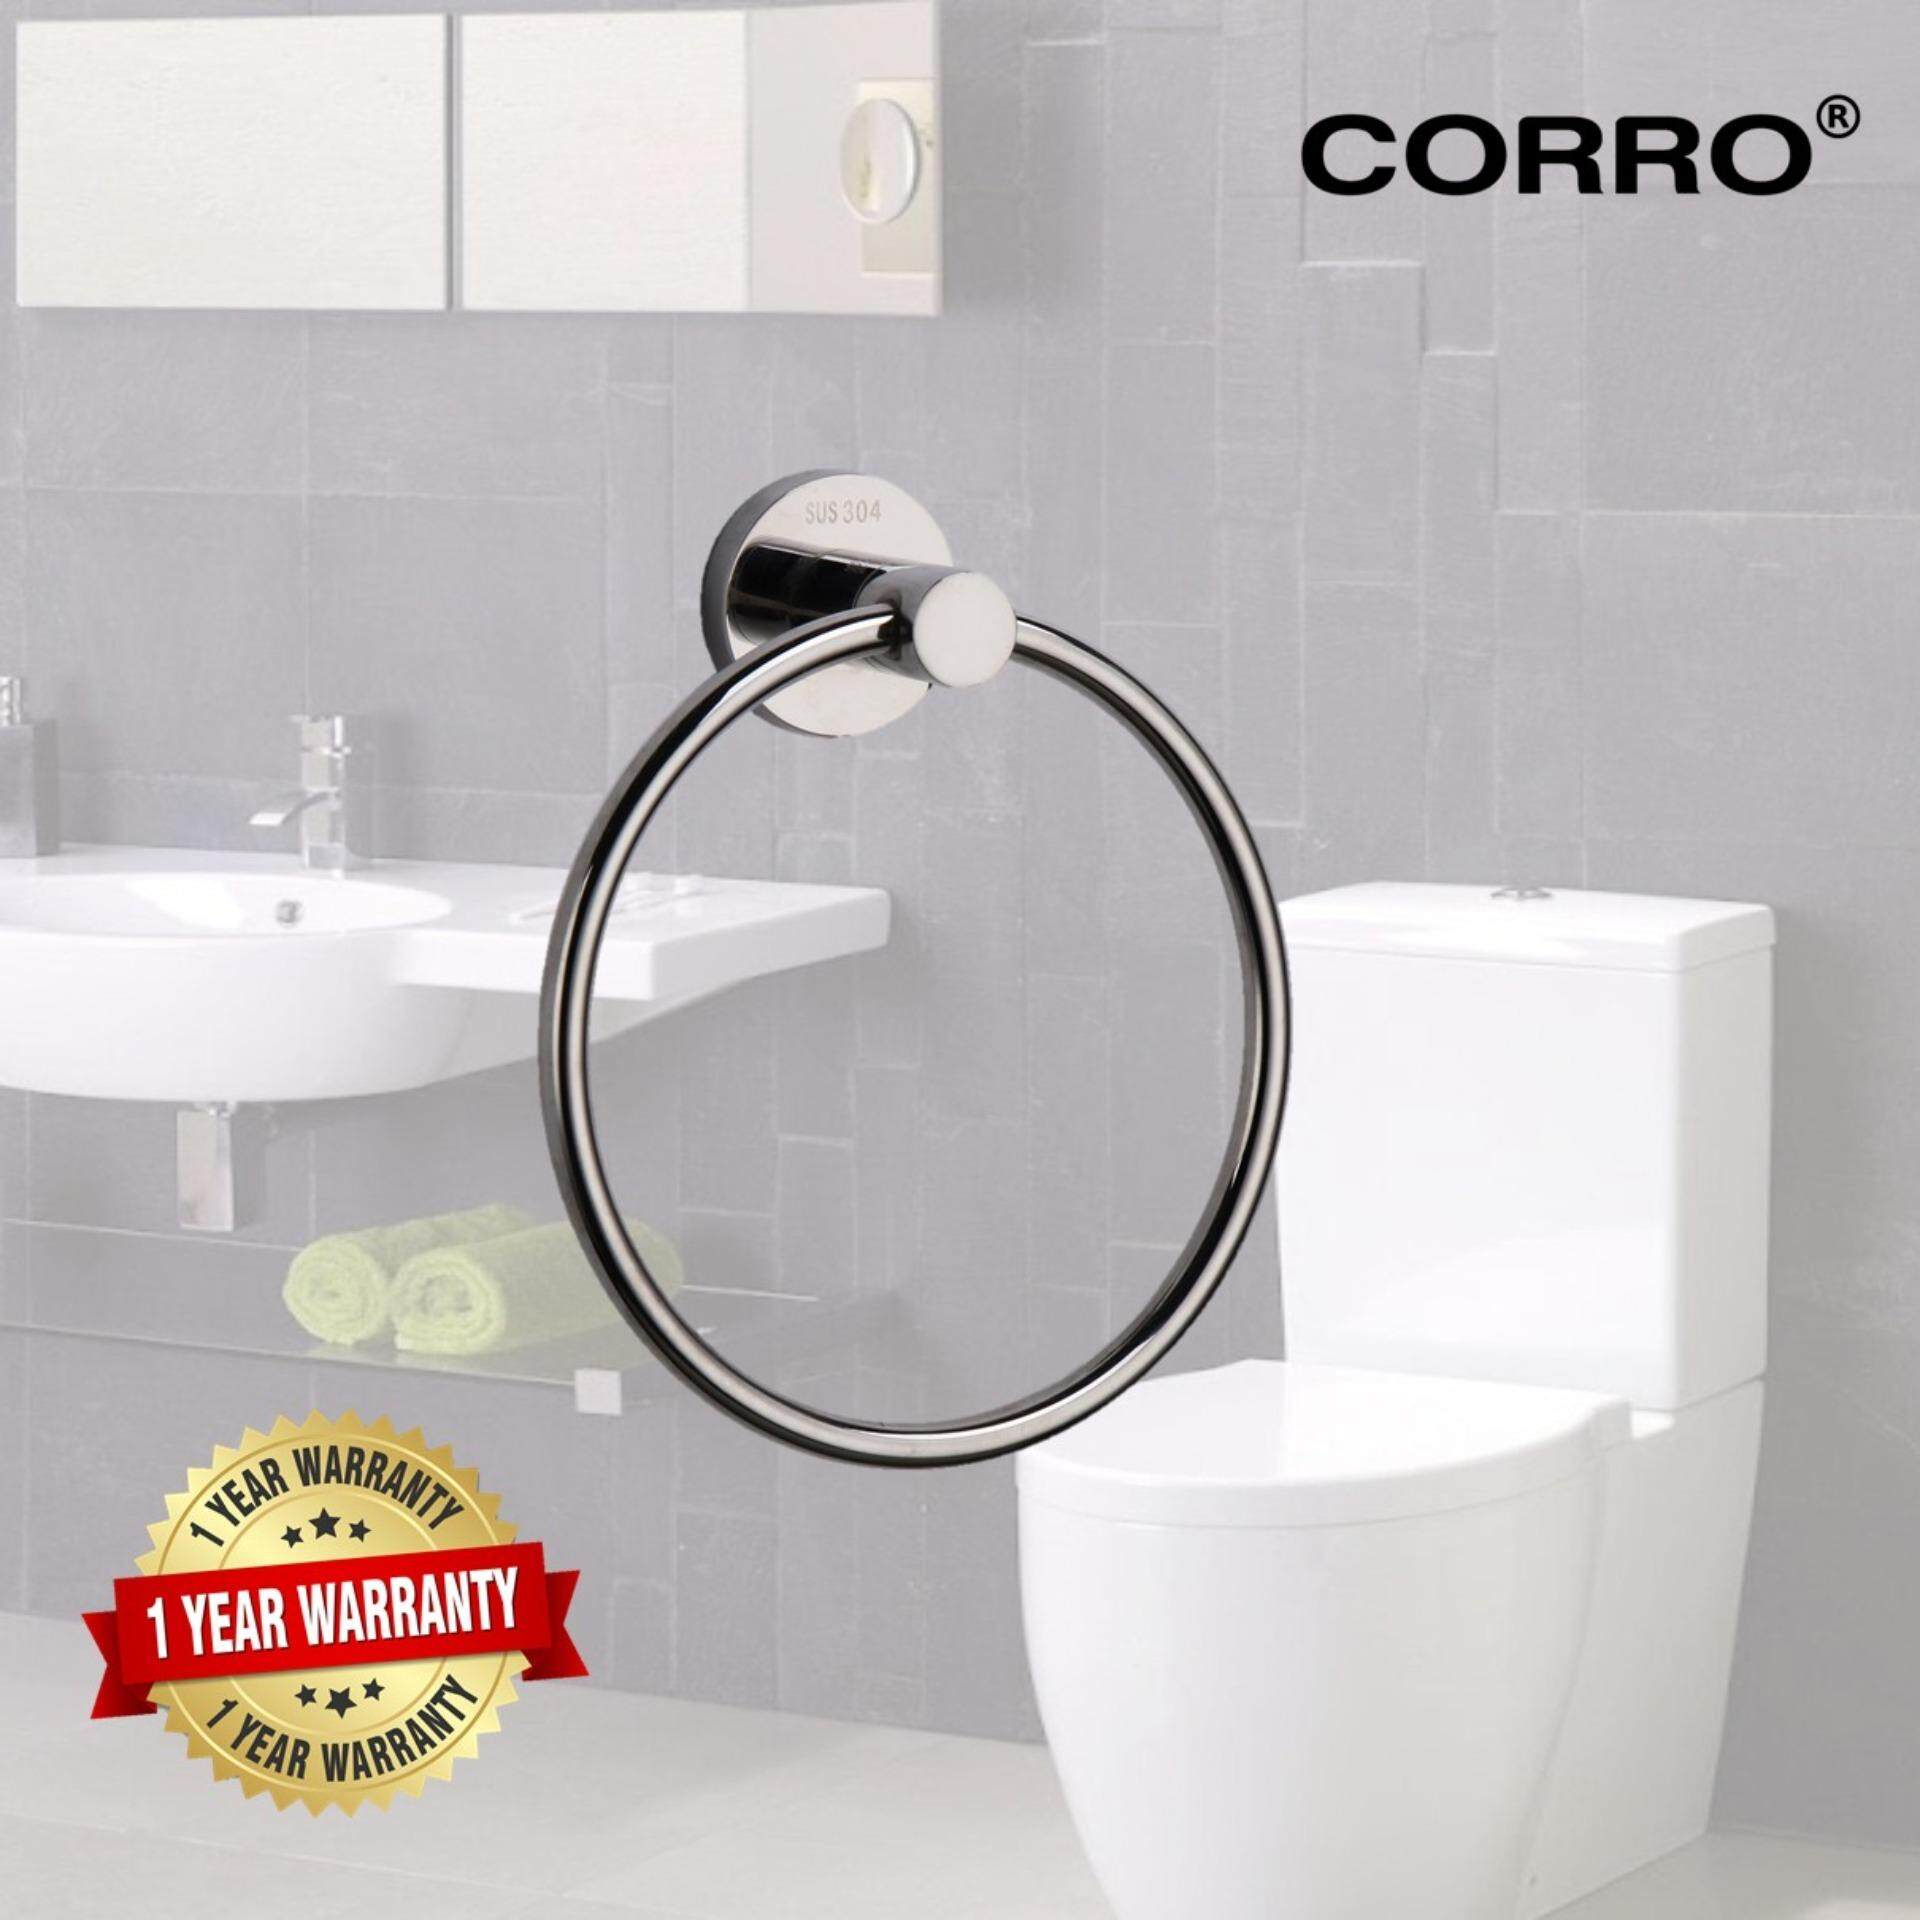 CORRO High Quality SUS304 Stainless Steel Towel Ring